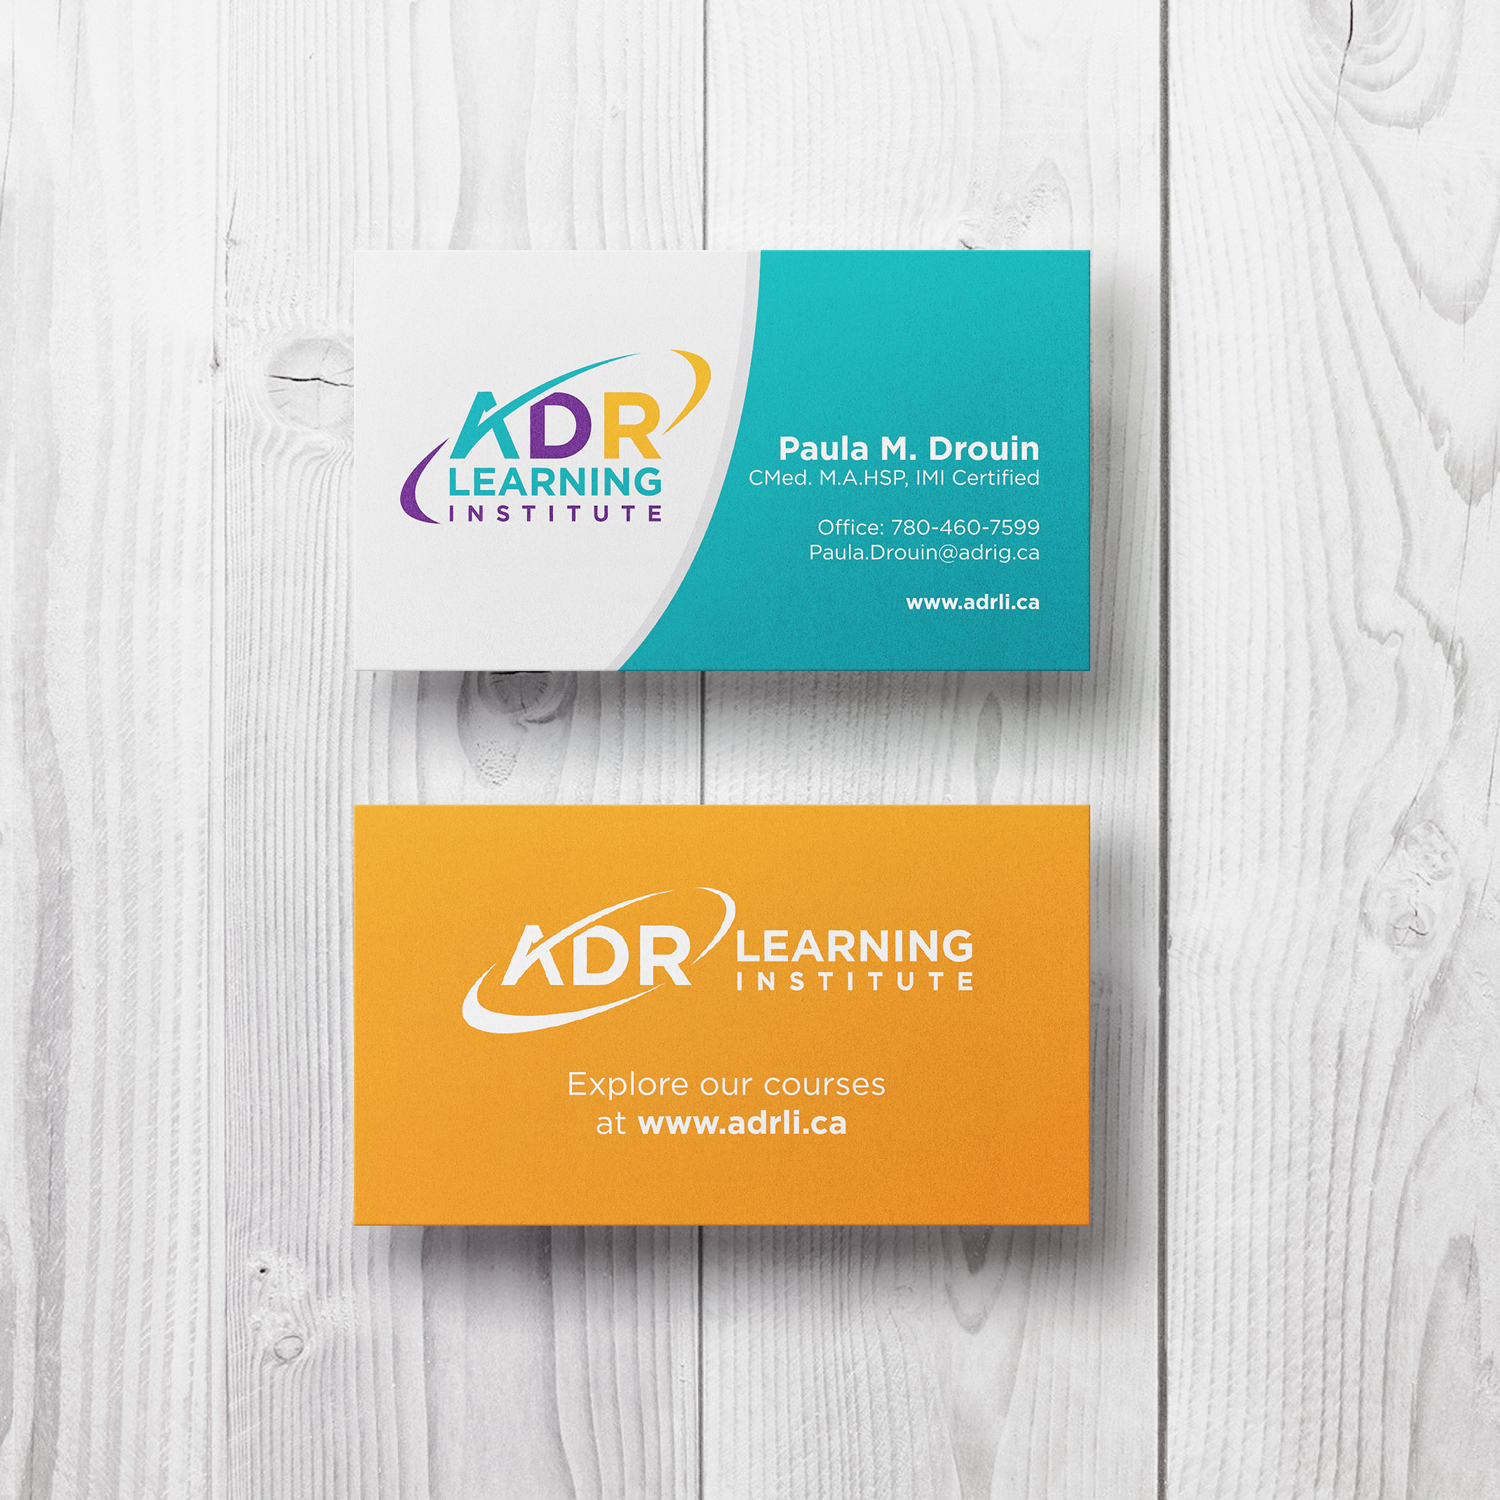 ADR-Learning-Institute-3.jpg